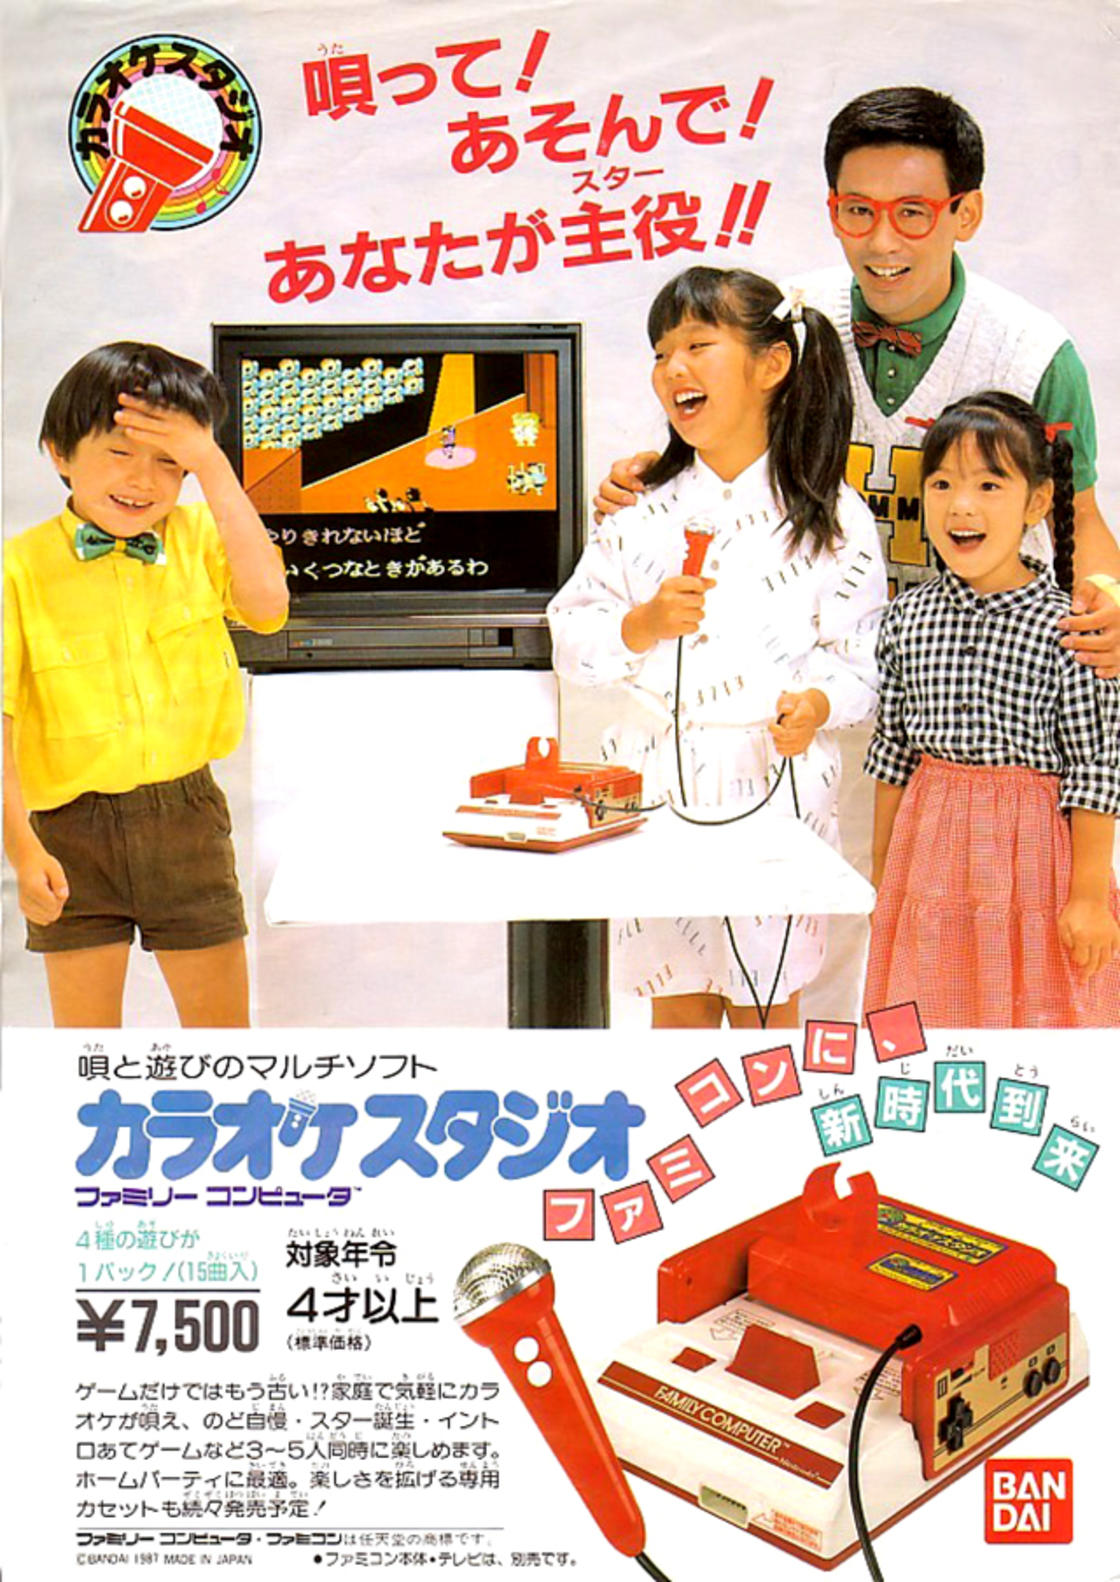 publicites-japonaises-jeux-video-1980-15.jpg